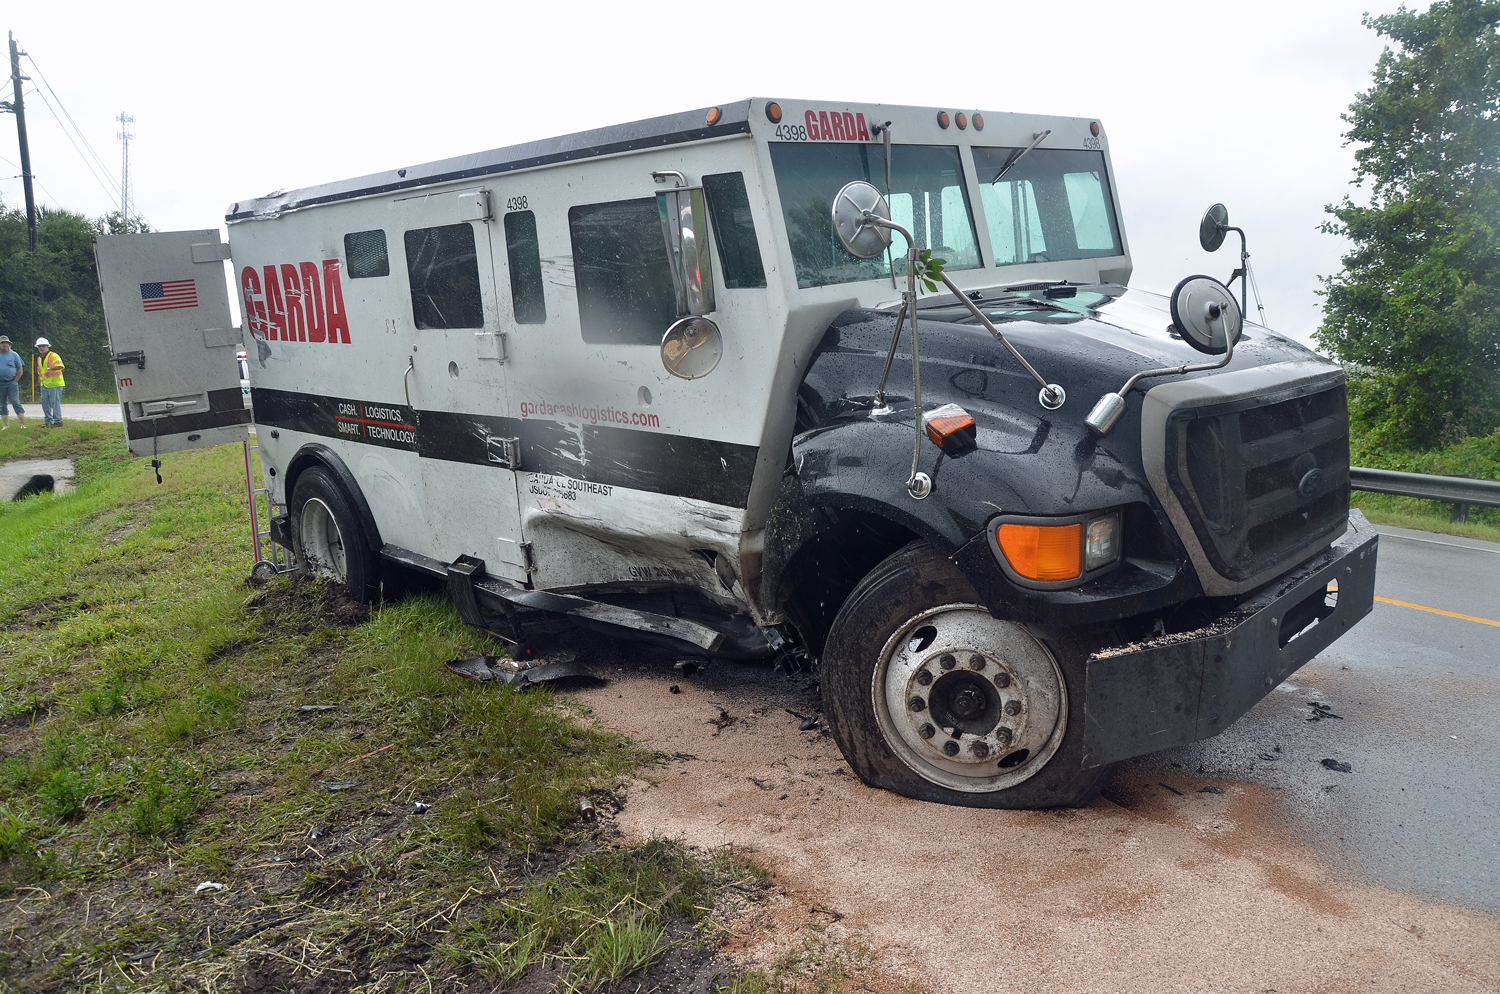 Horse Killed, 2 People Injured, One Gravely, in Massive Wreck on ...